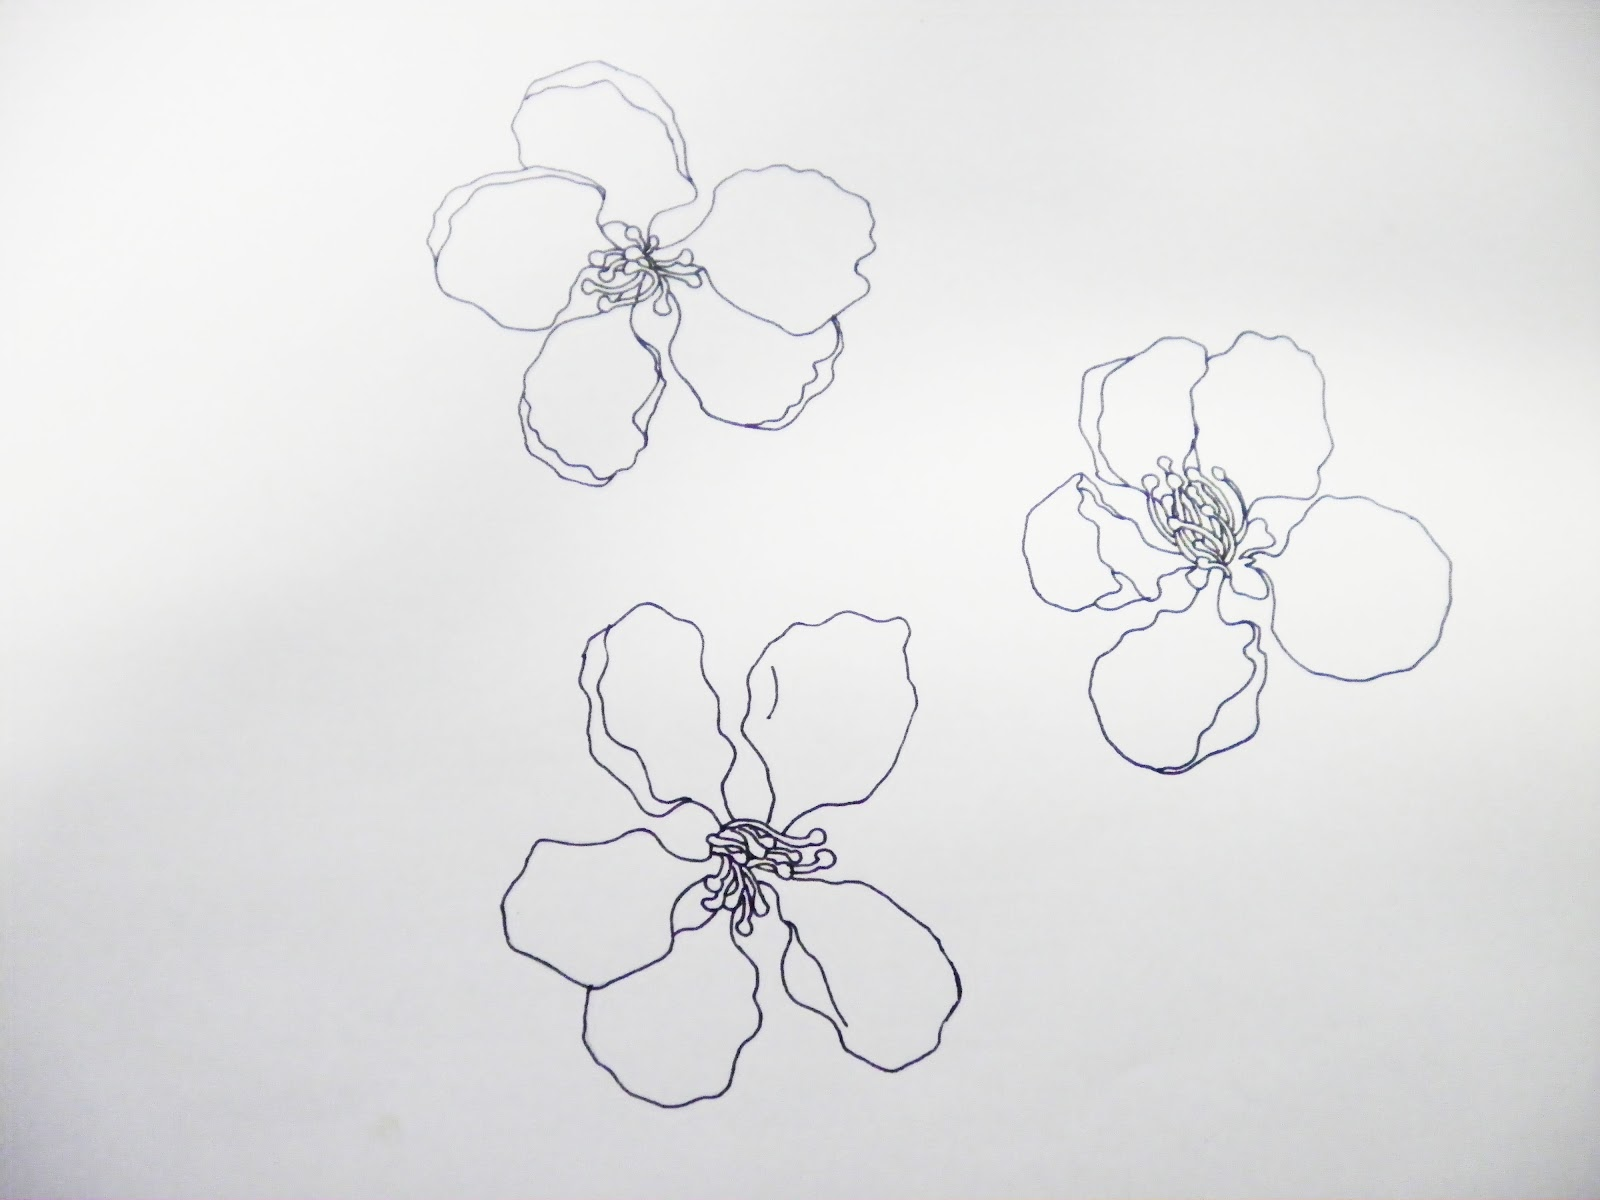 Single line drawing flowers : Textile bliss drawing and motif development